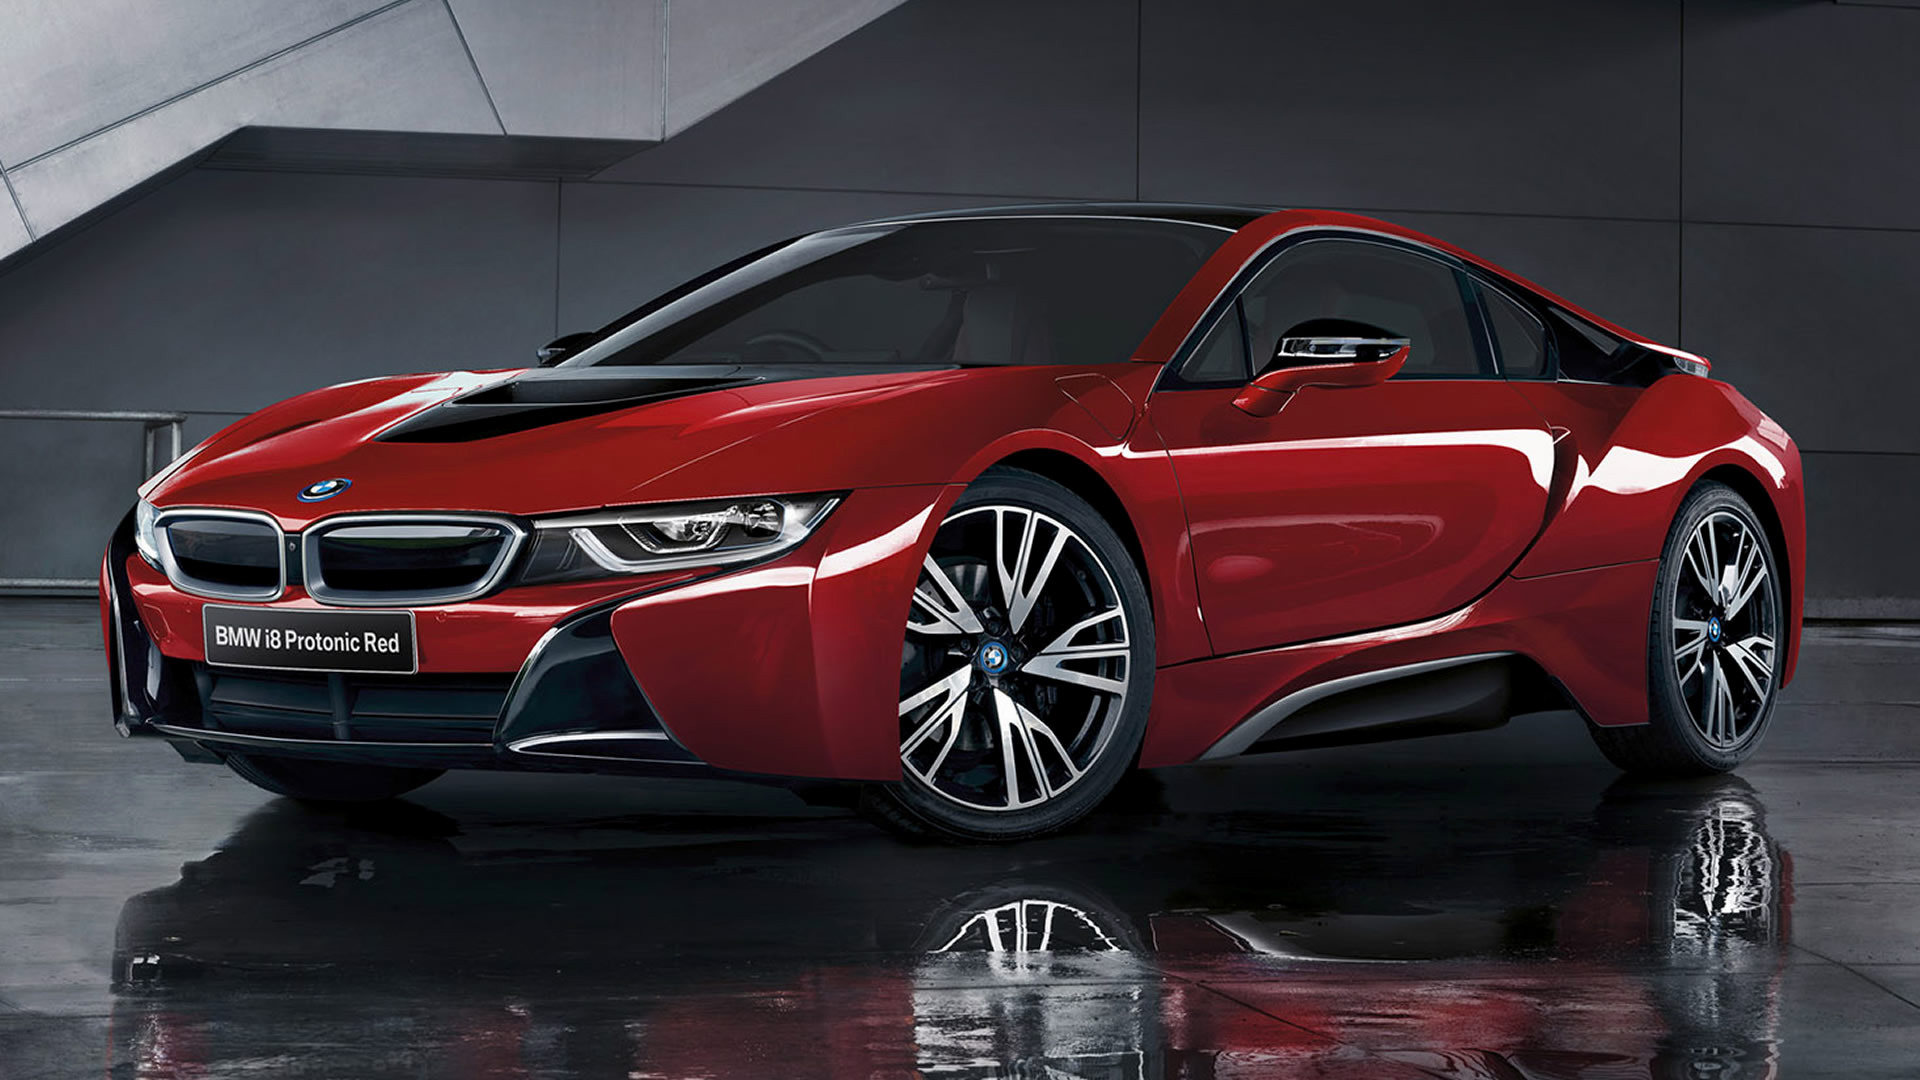 Bmw I8 Protonic Red Edition 2016 Wallpapers And Hd